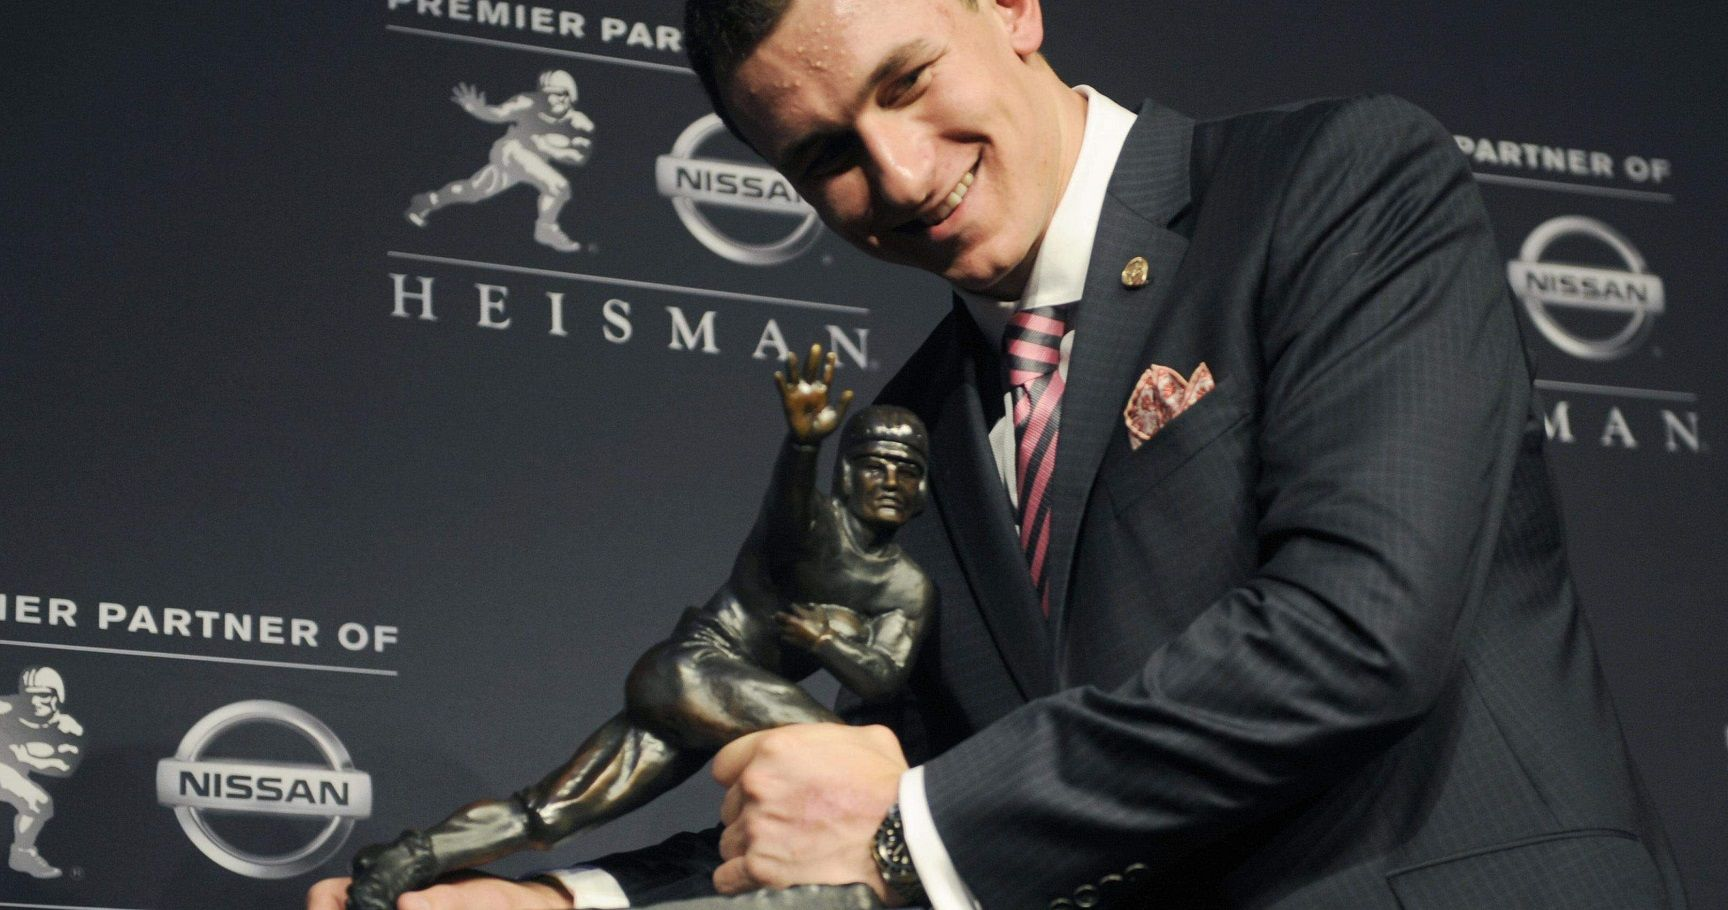 The 15 Worst Heisman Winners to Play in the NFL